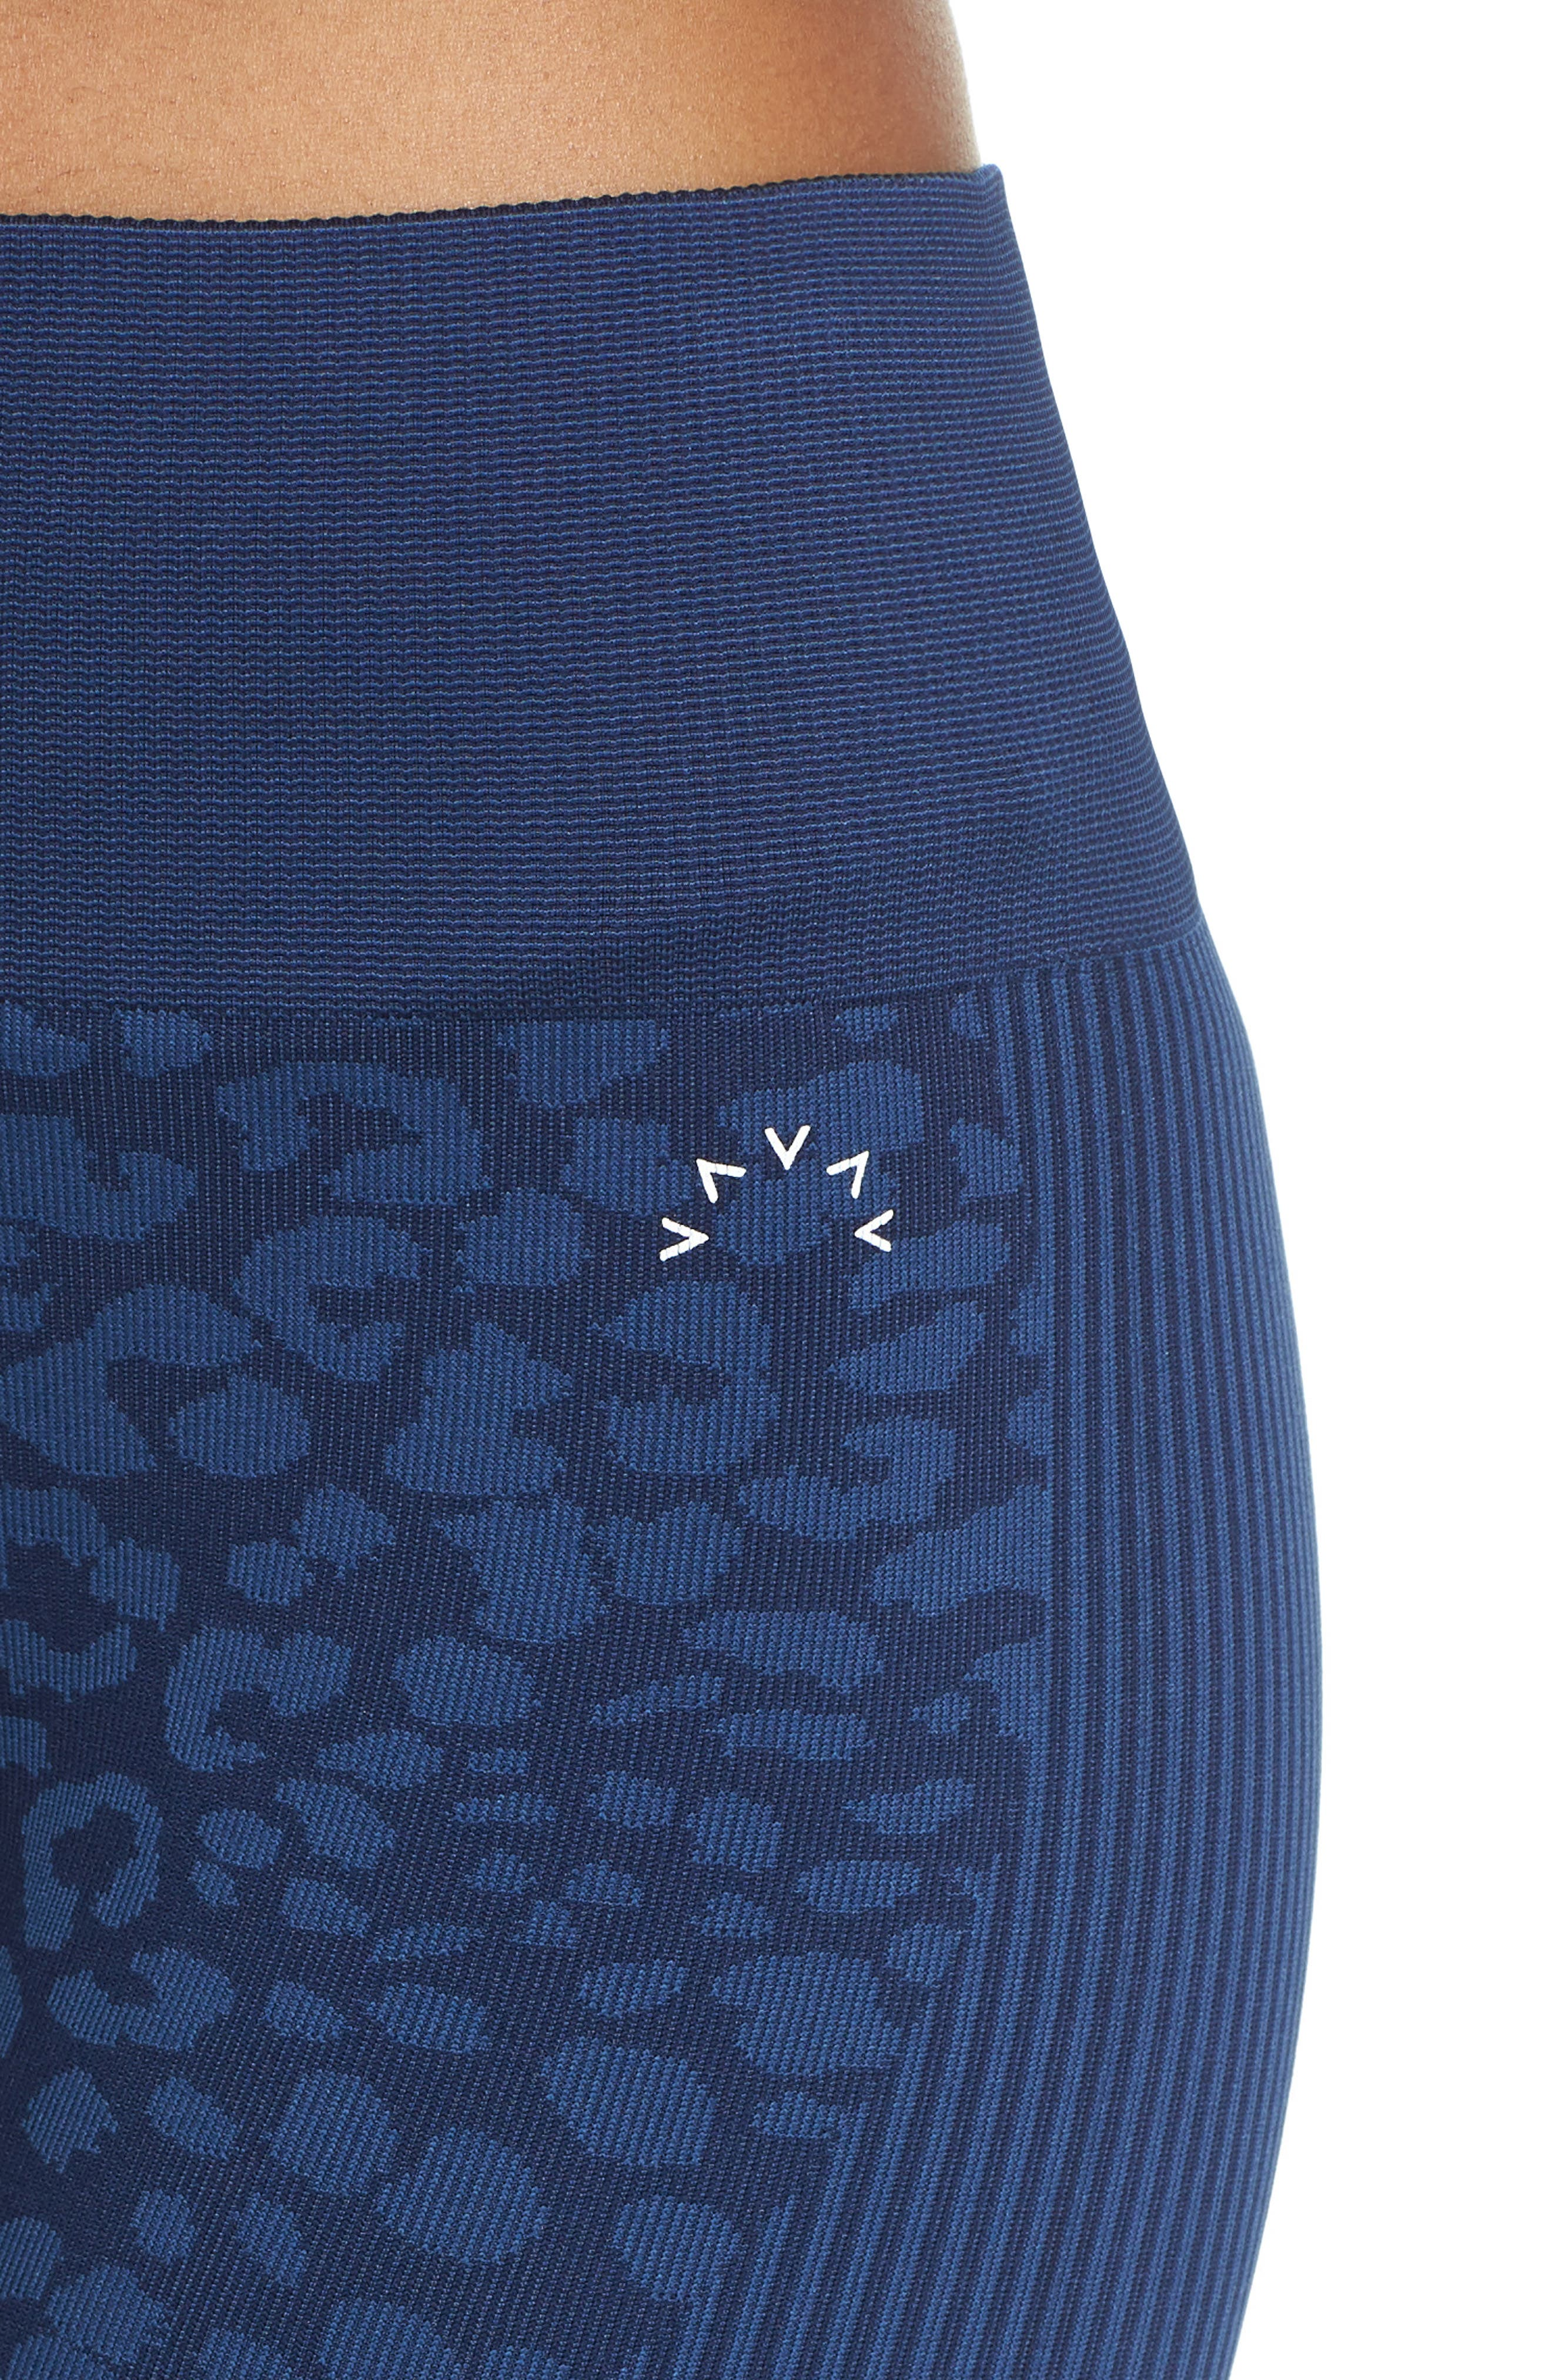 Quincy Seamless Leggings,                             Alternate thumbnail 4, color,                             NAVY LEOPARD